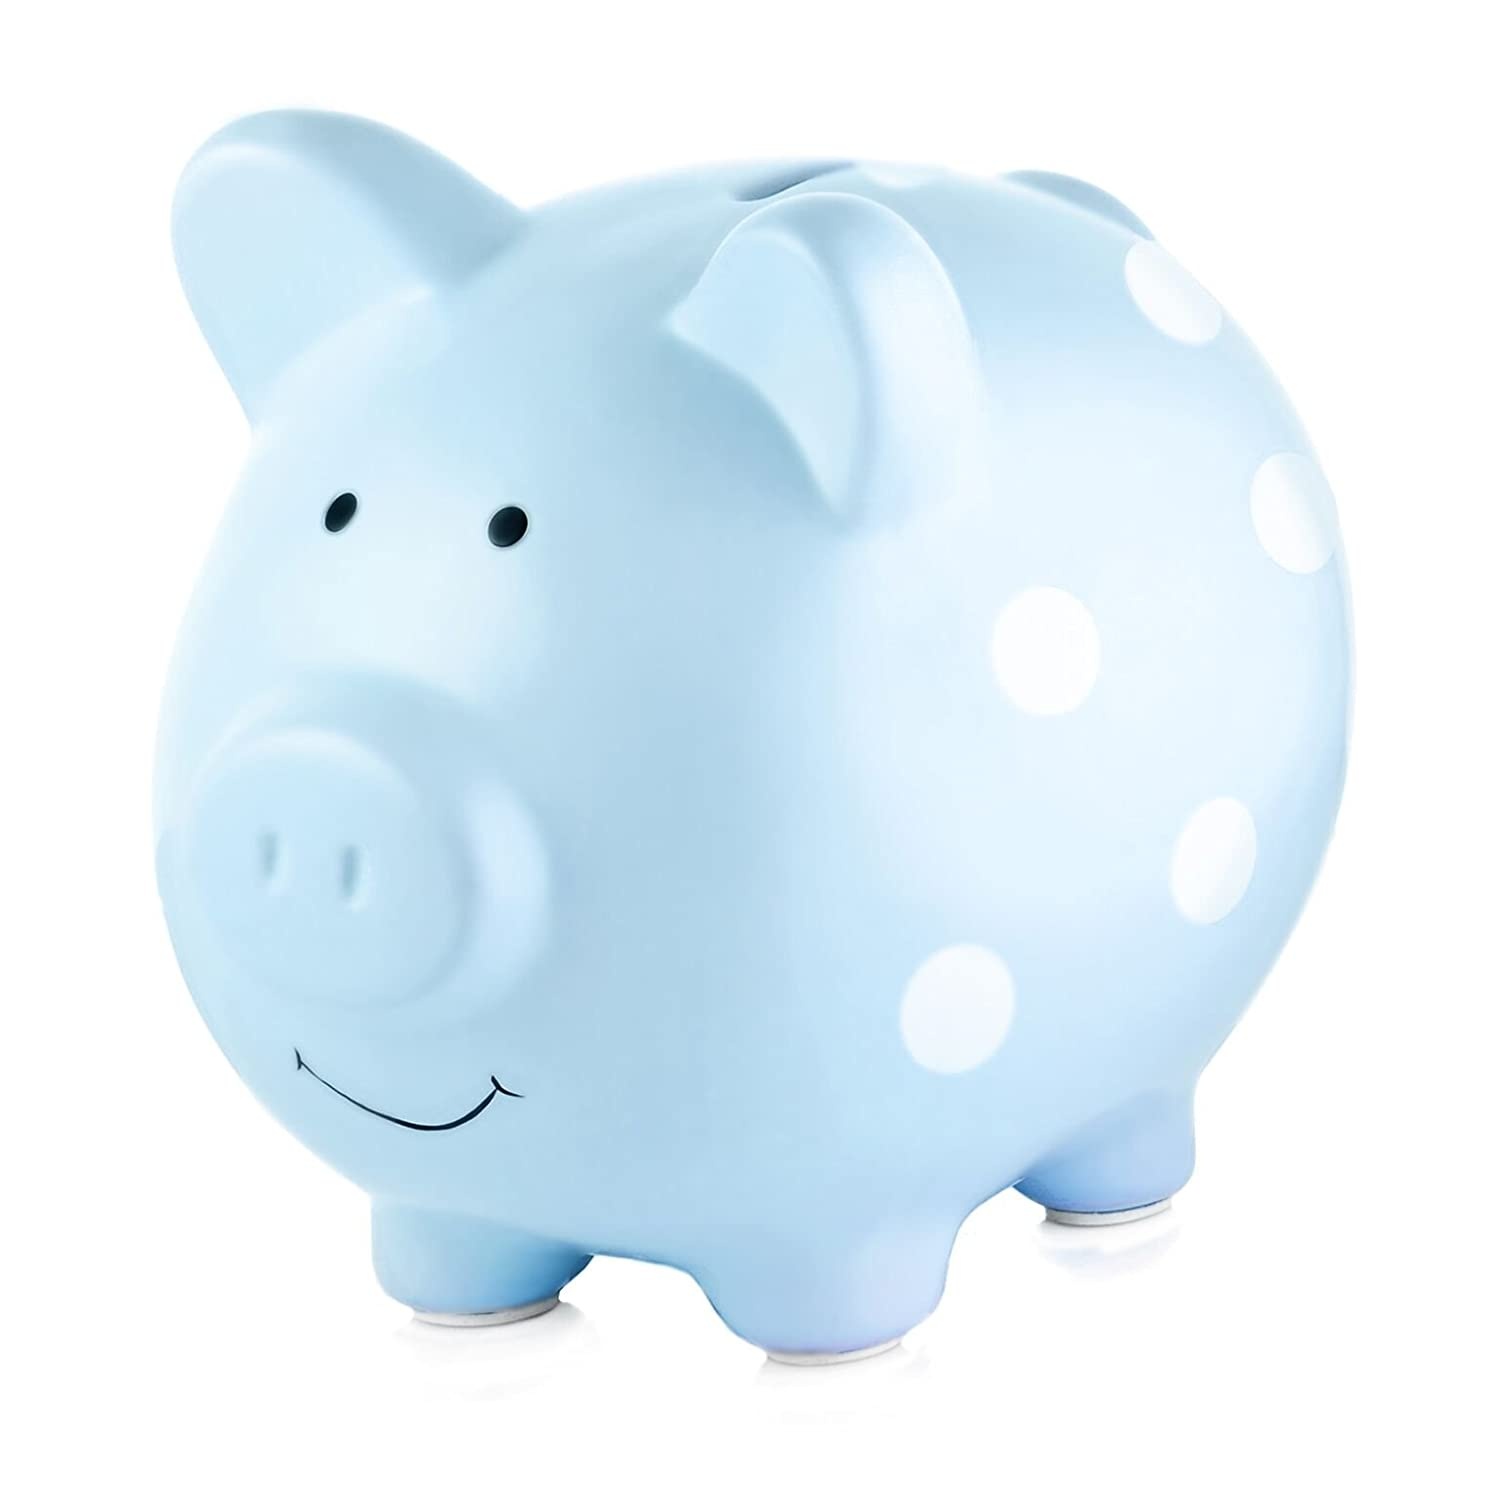 Pearhead Ceramic Piggy Bank, Makes a Perfect and Great Gift, Nursery Décor, Keepsake, or Savings Piggy Bank for Kids, Blue With White Polka Dots Nursery Décor 40104